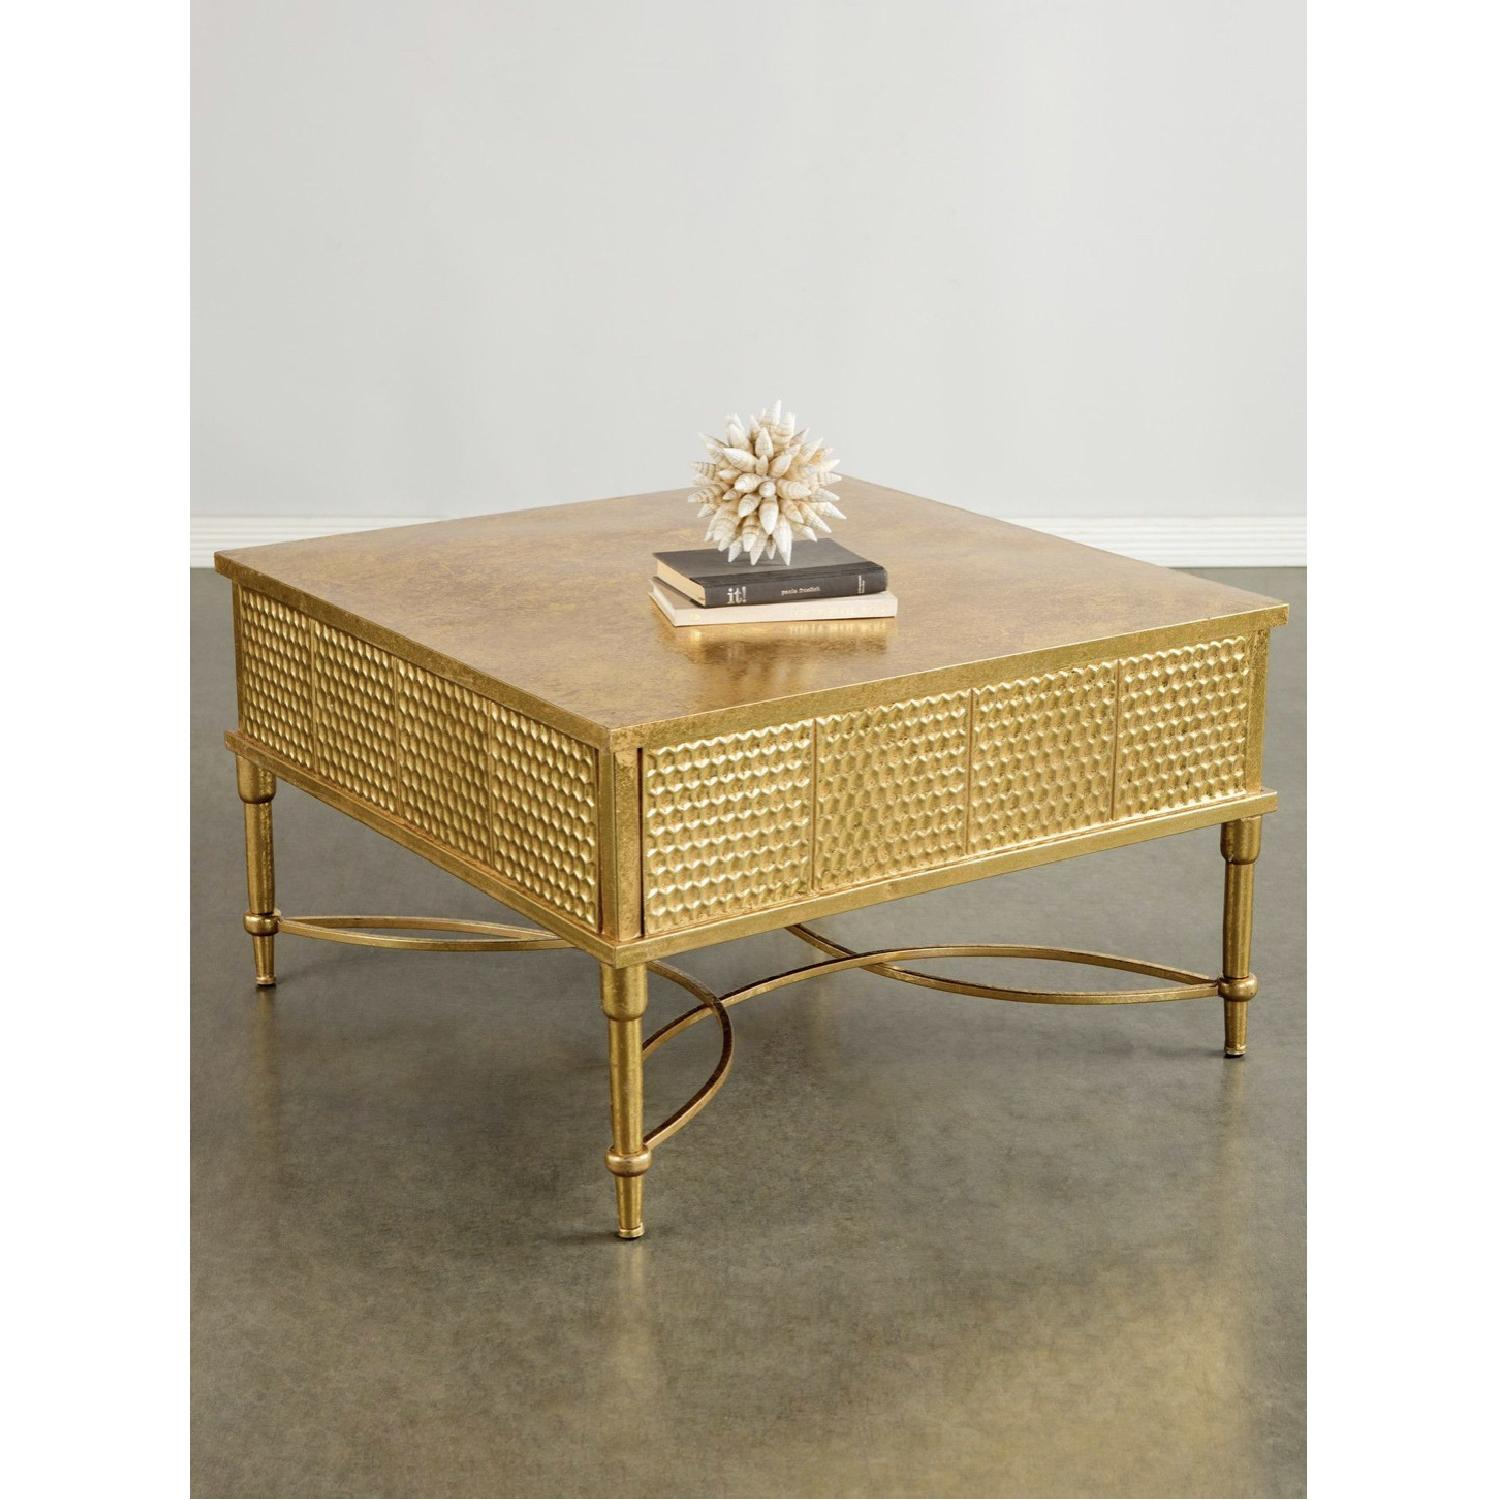 Pictures On Beige Couch With Gold Coffee Table